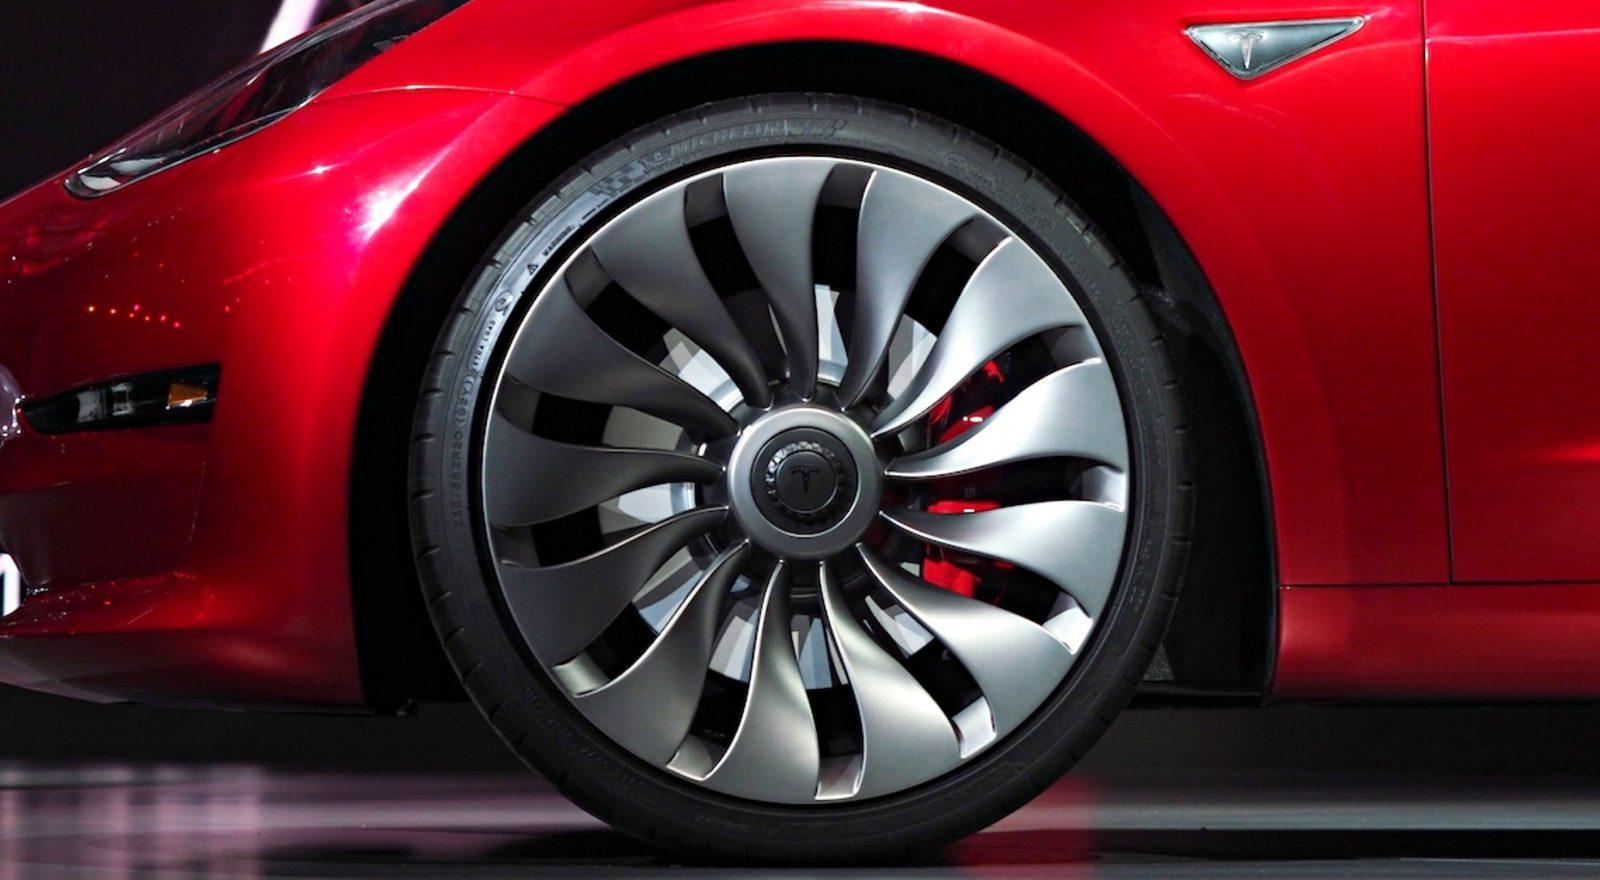 Advantages and disadvantages of bigger tyres